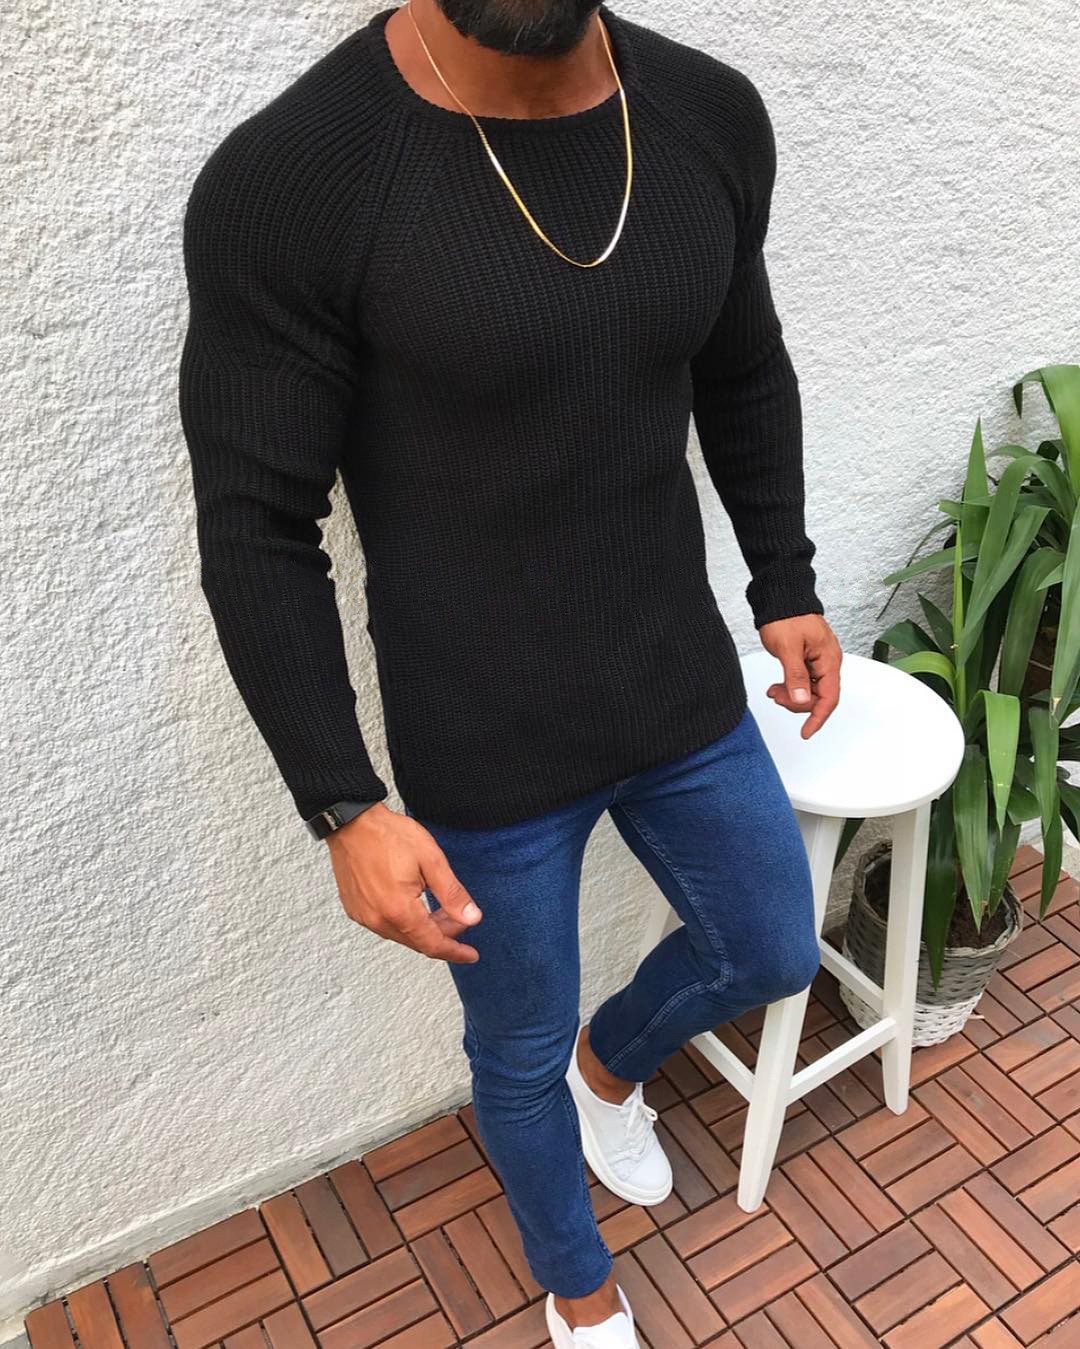 New Knitted Wool Sweaters Solid Color Casual O-Neck Pull Homme Sweater Warm Cotton Pullover Mens Autumn Winter Clothes